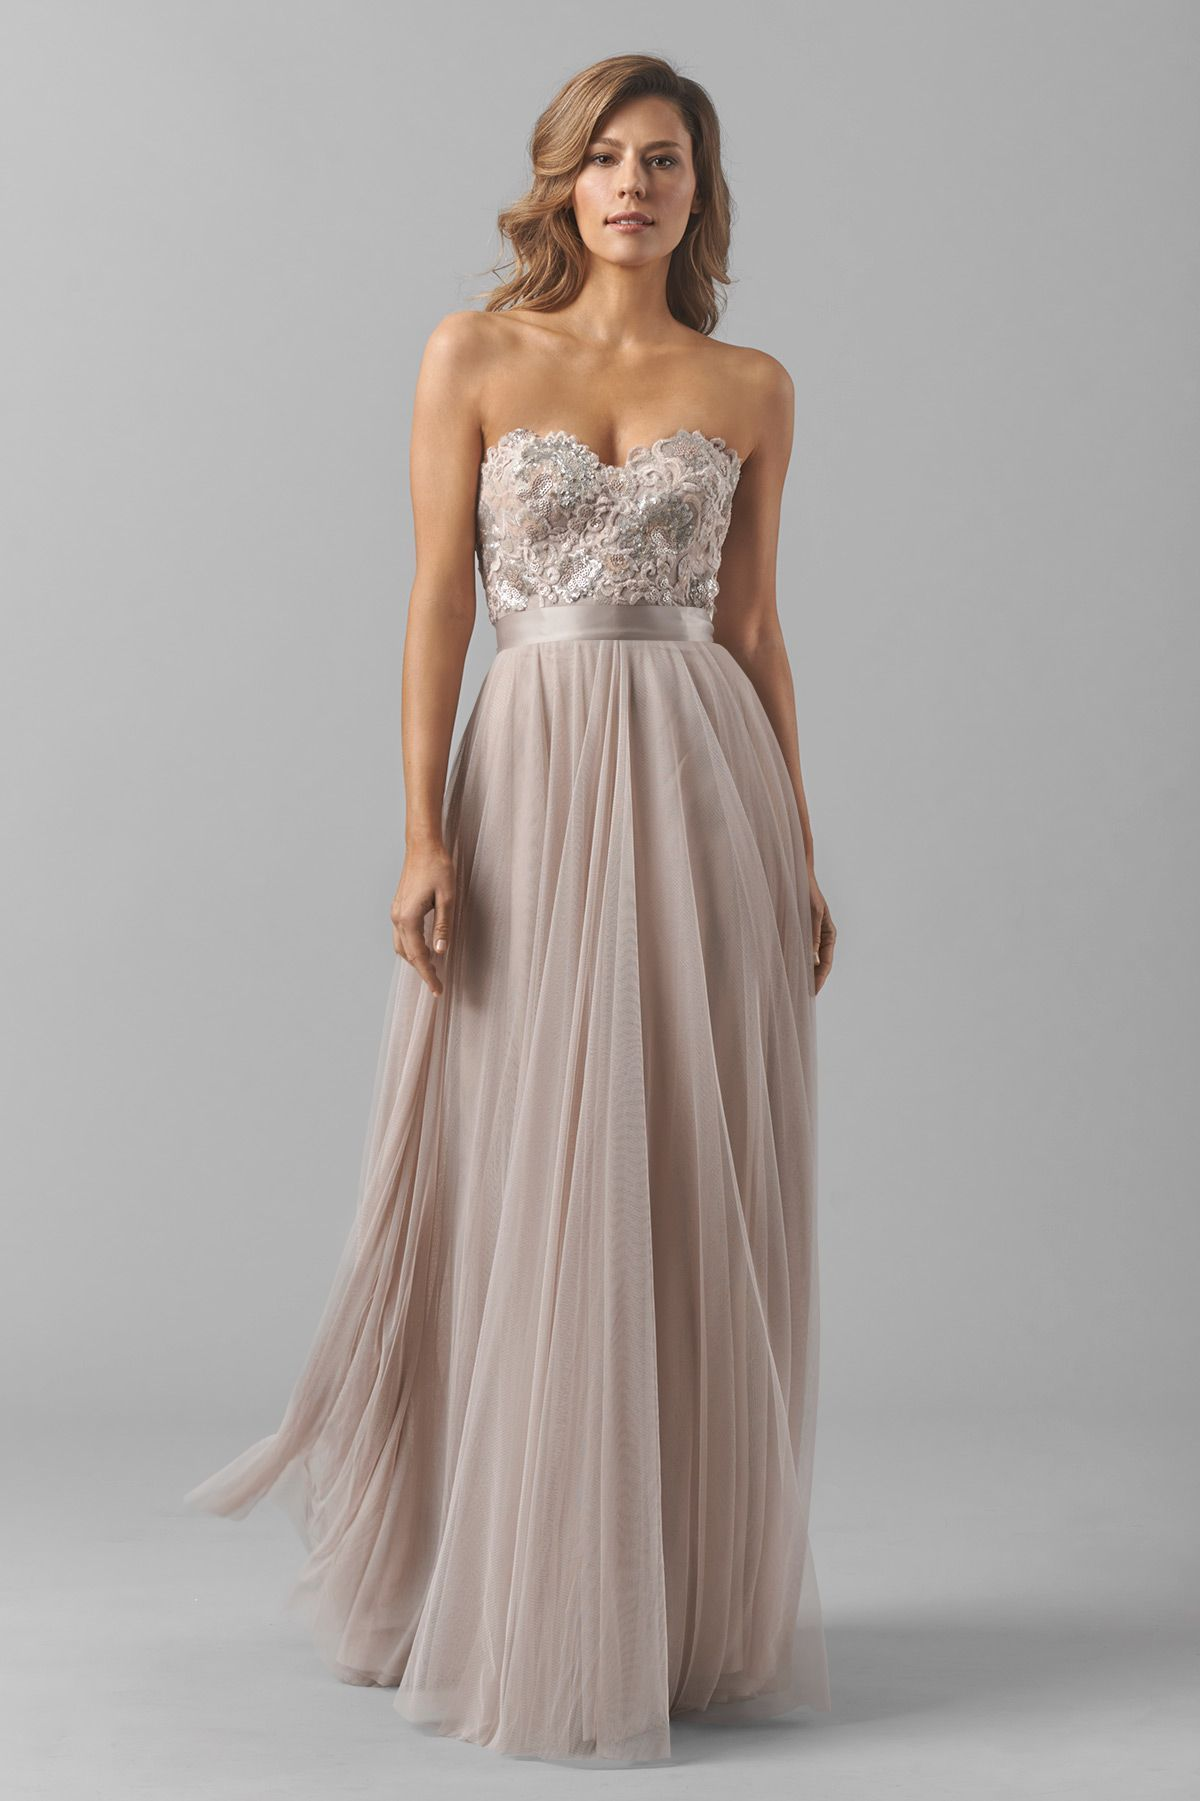 Watters maids dress brescia dress brescia style 6317i dress shop watters bridesmaid dress brescia in bella lace at weddington way find the perfect made to order bridesmaid dresses for your bridal party in your ombrellifo Images